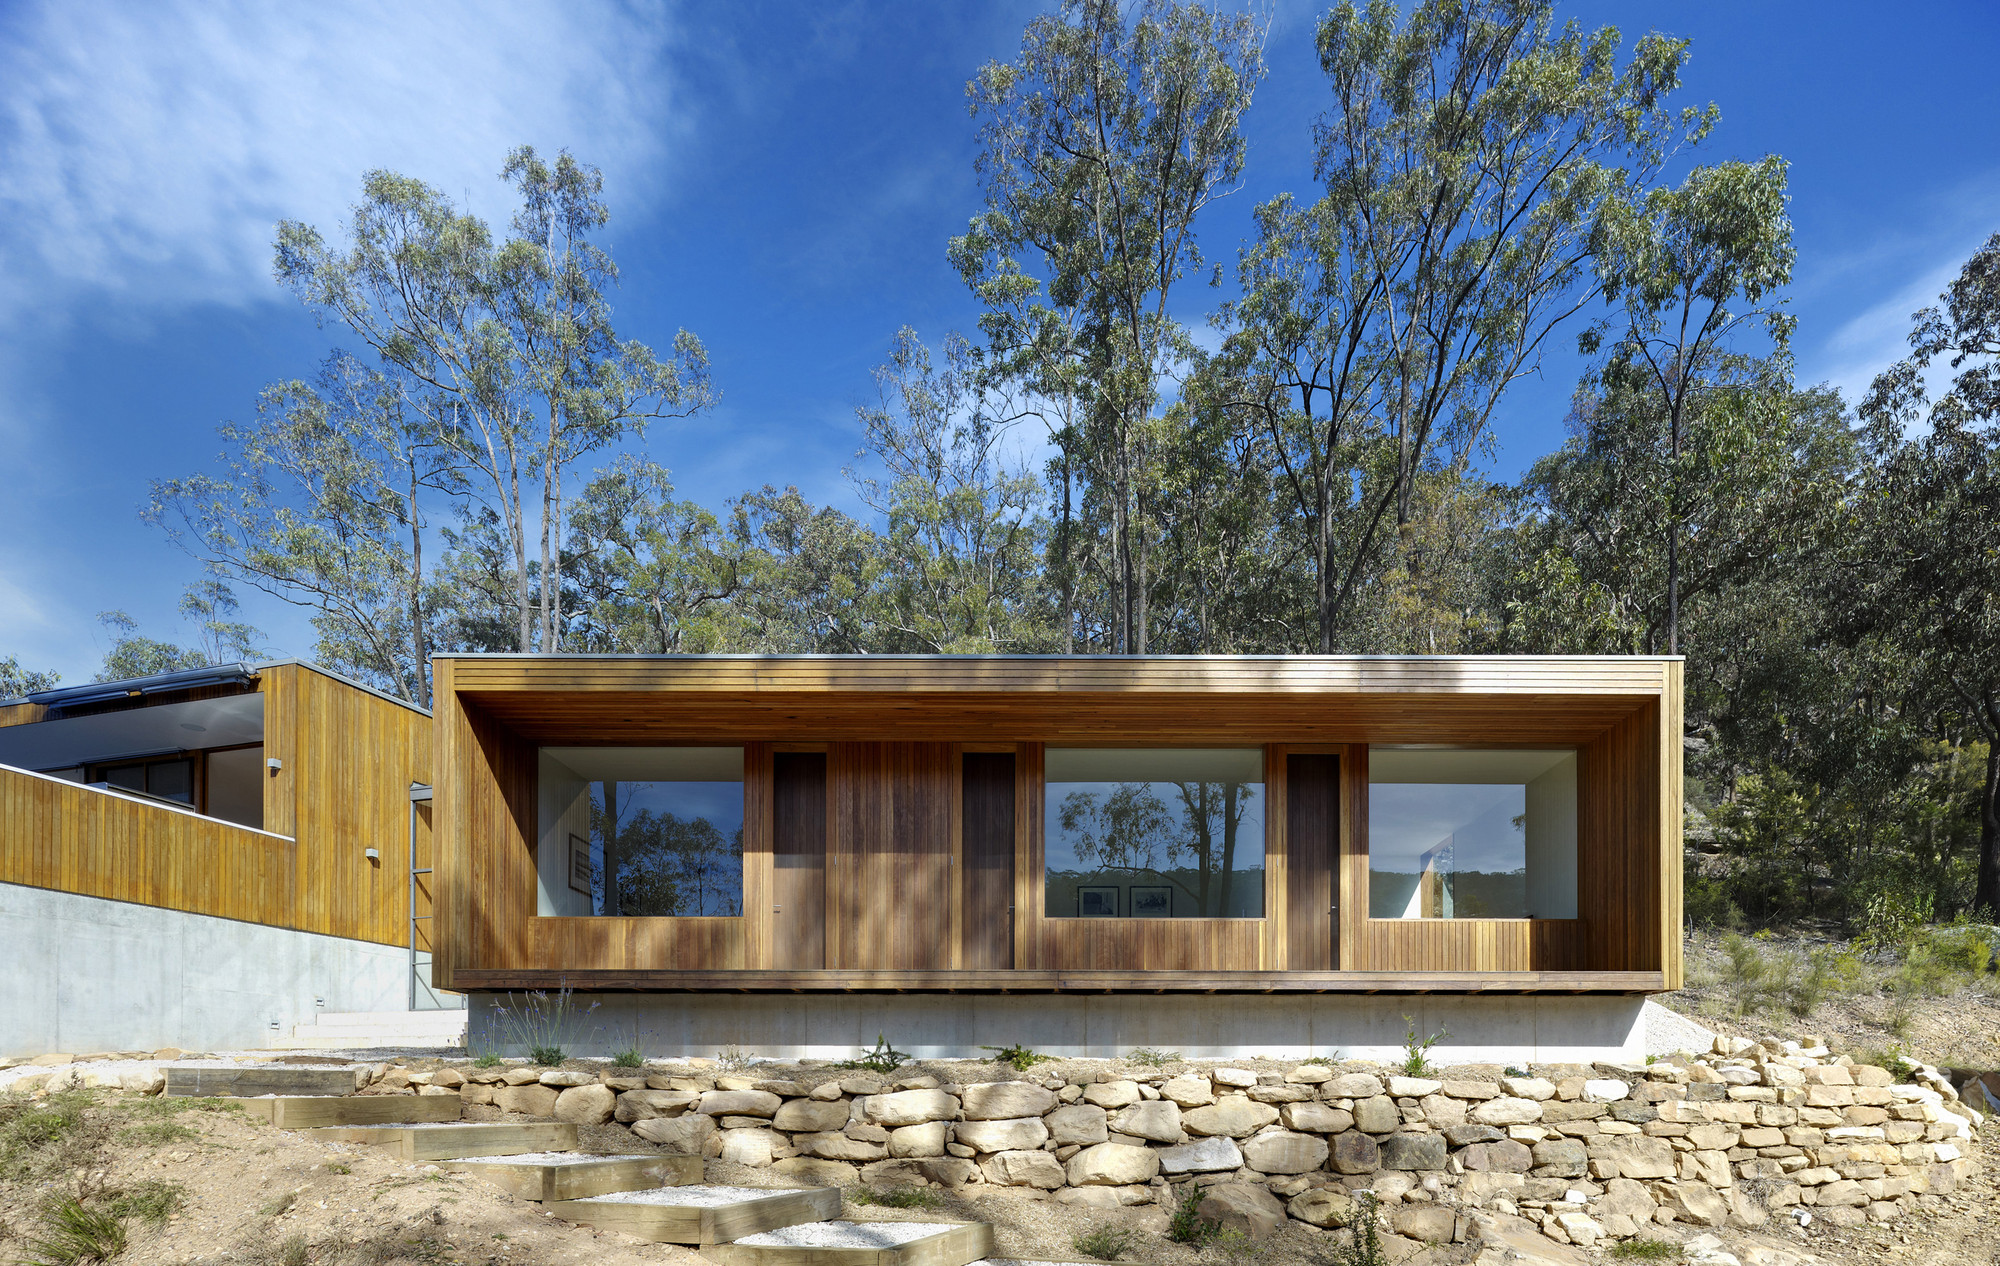 St Alban's House / Rory Brooks Architects, Courtesy of Rory Brooks Architects